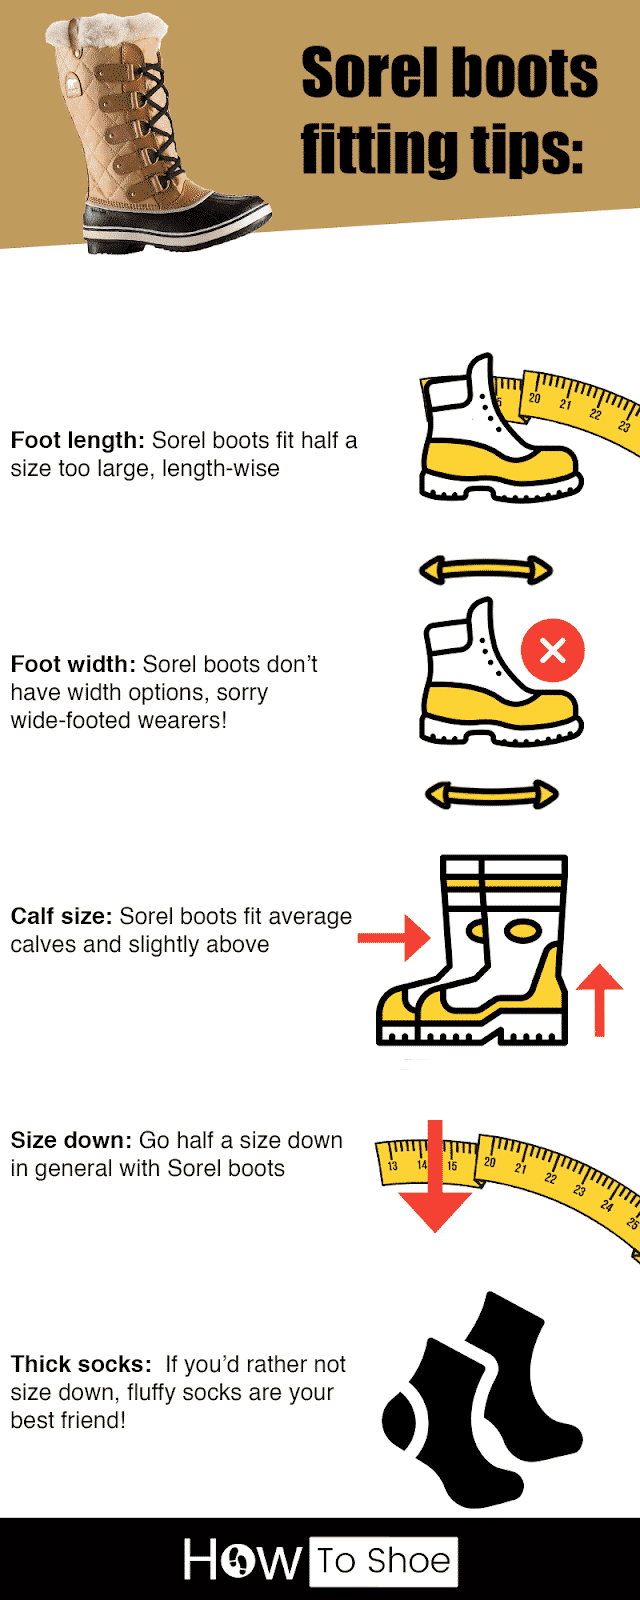 How Do Sorel Boots Fit